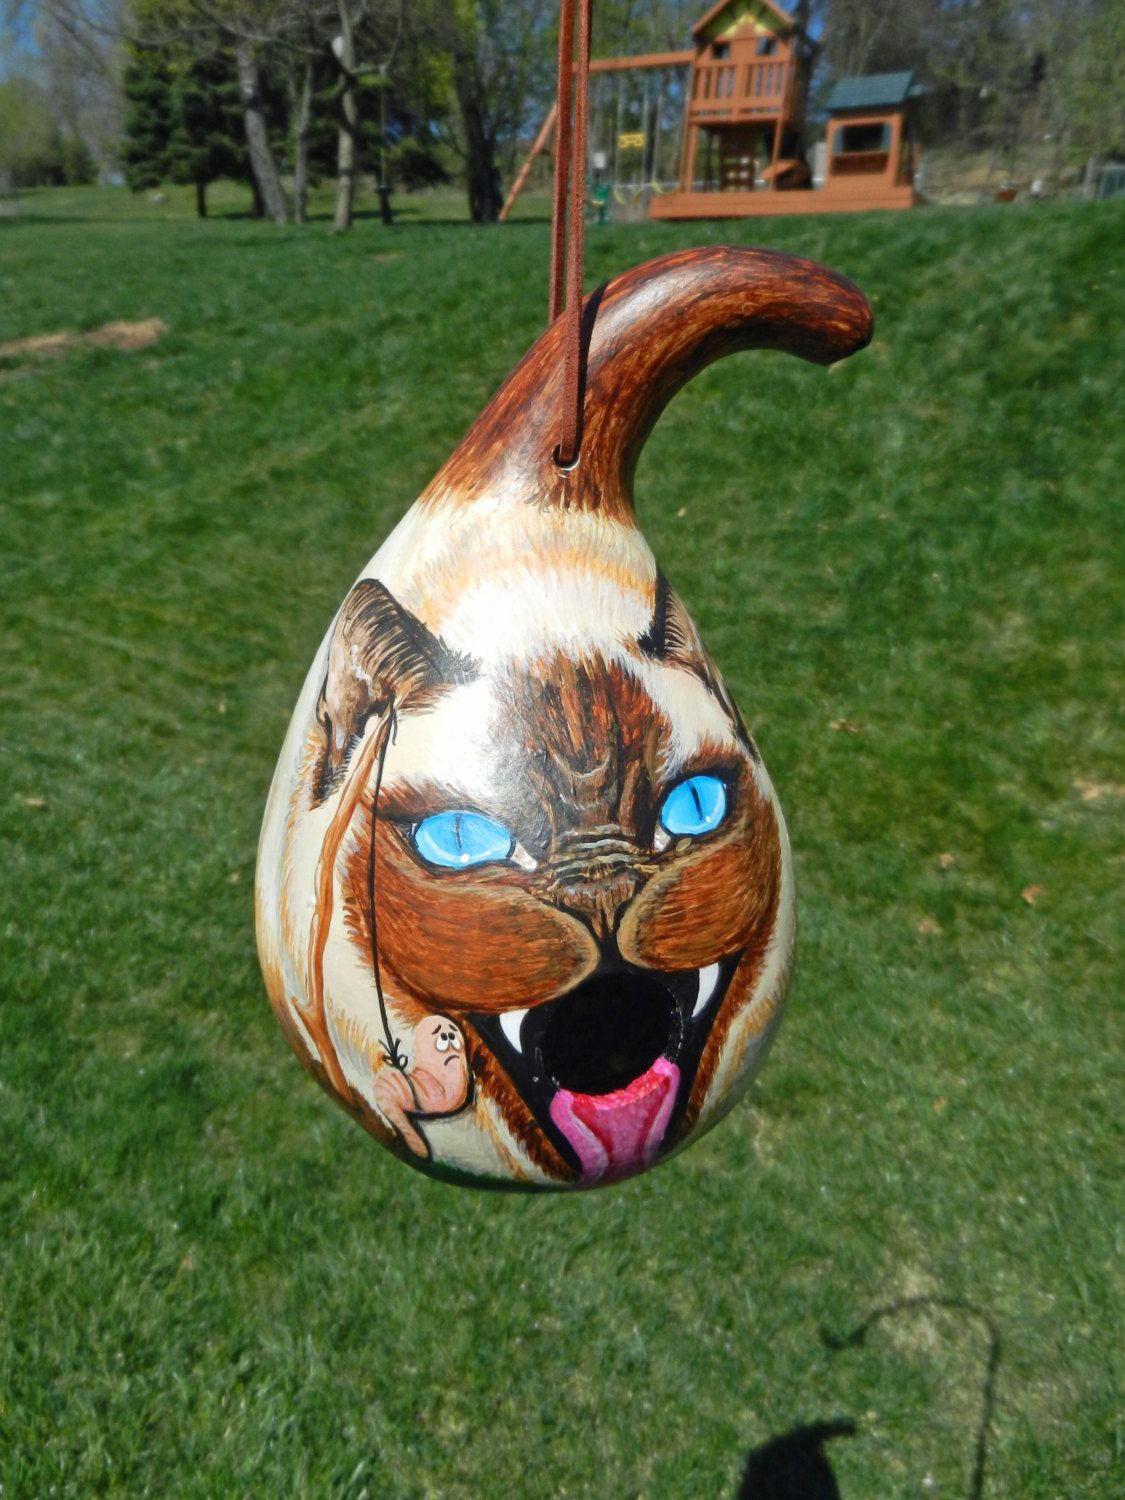 Siamese Cat Birdhouse Gourd by BostfulBits on Etsy https://www.etsy on hand decorating gourds, cat pumpkins, cat blue eyes, owl gourds, dog gourds, different gourds, flamingo gourds, cat gourd art, witch gourds, ornaments from gourds, apache gourds, cat bird houses, chicken gourds, bear gourds, primitive gourds, bird gourds, cat bird seat, funny gourds, frog gourds, cheap dried gourds,